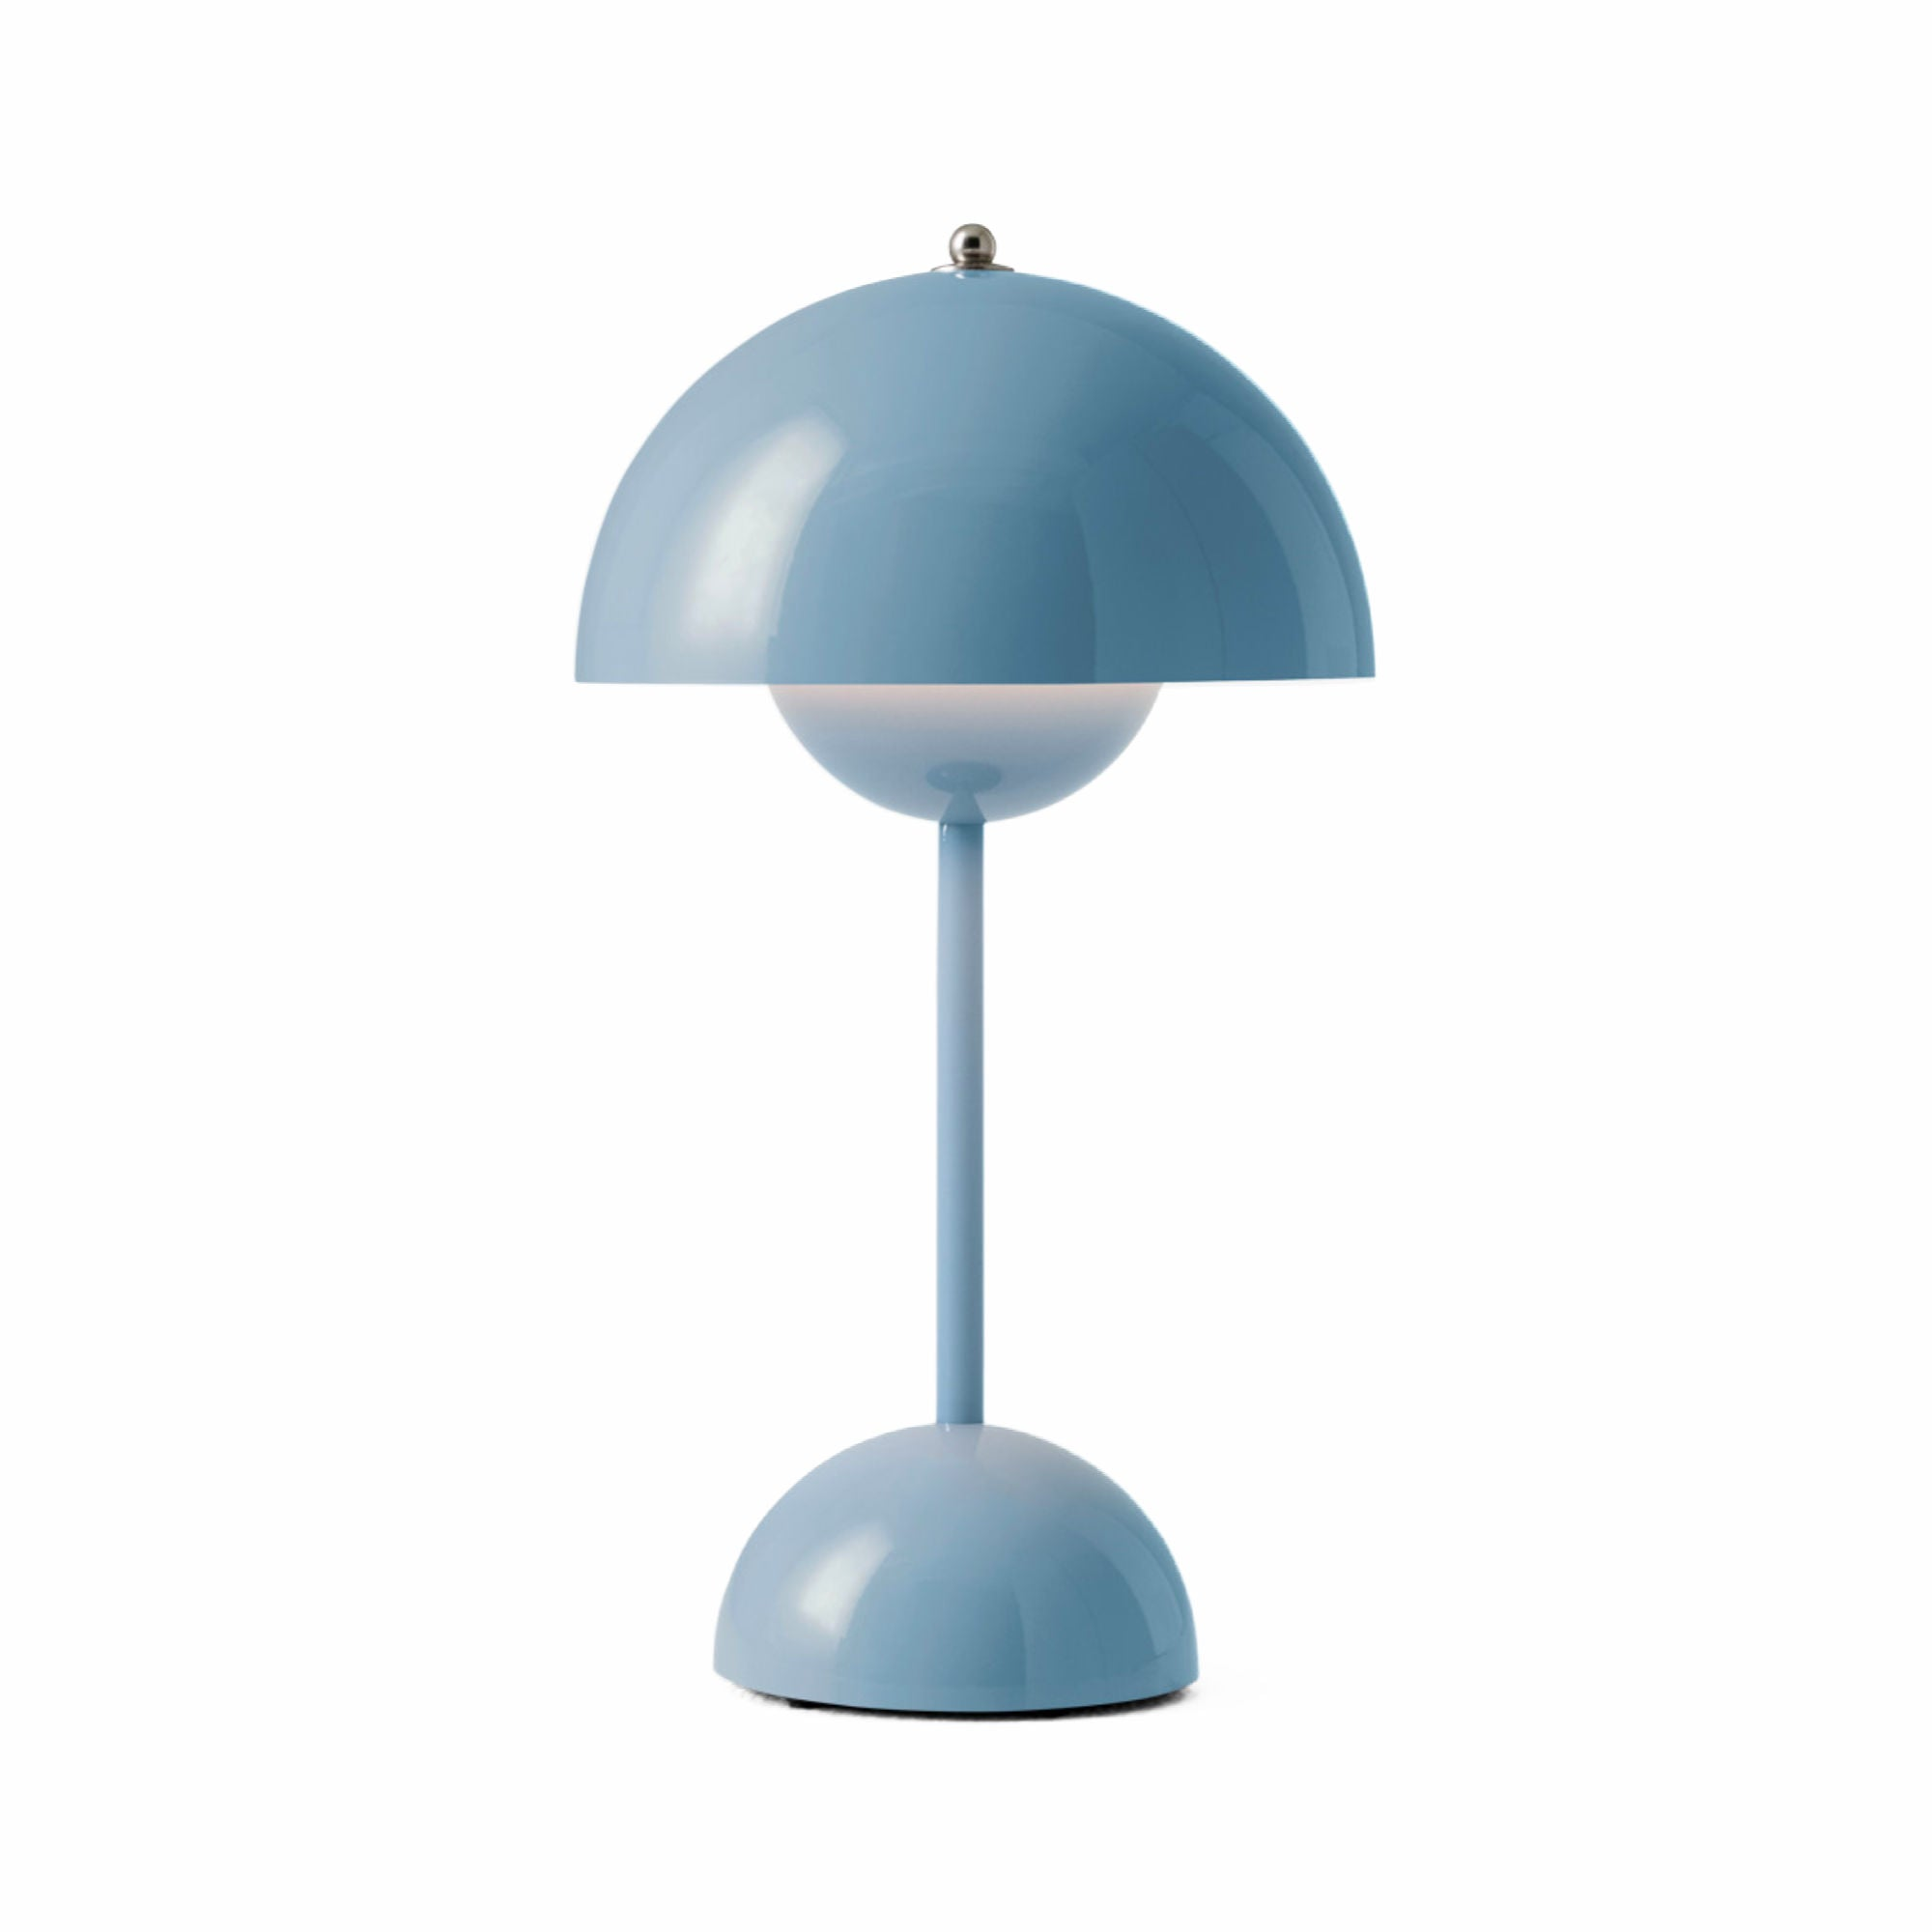 &Tradition VP9 Flowerpot Rechargeable Lamp , Light Blue